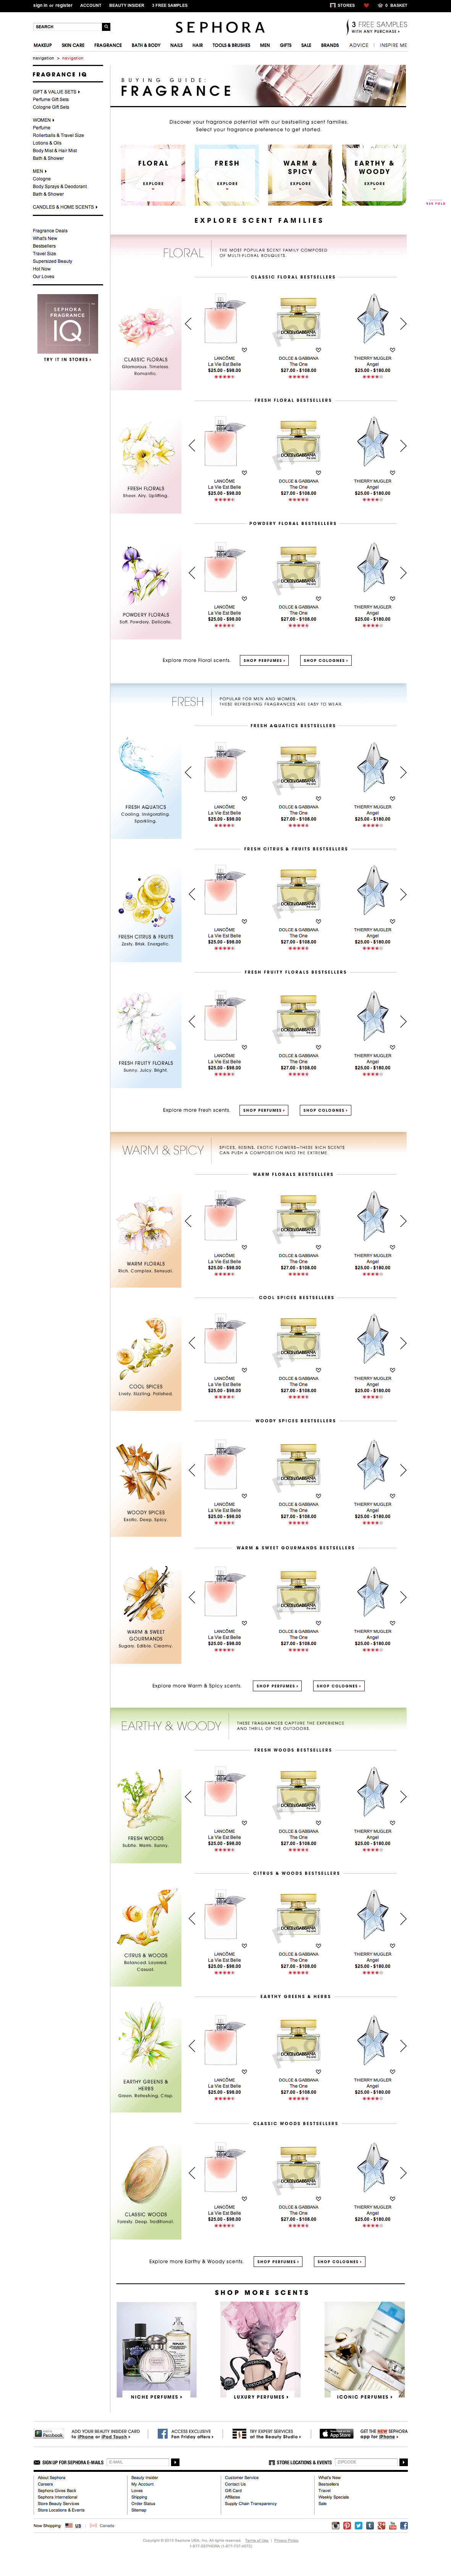 100714_Fragrance_IQ_Buying_Guide_V13.jpg